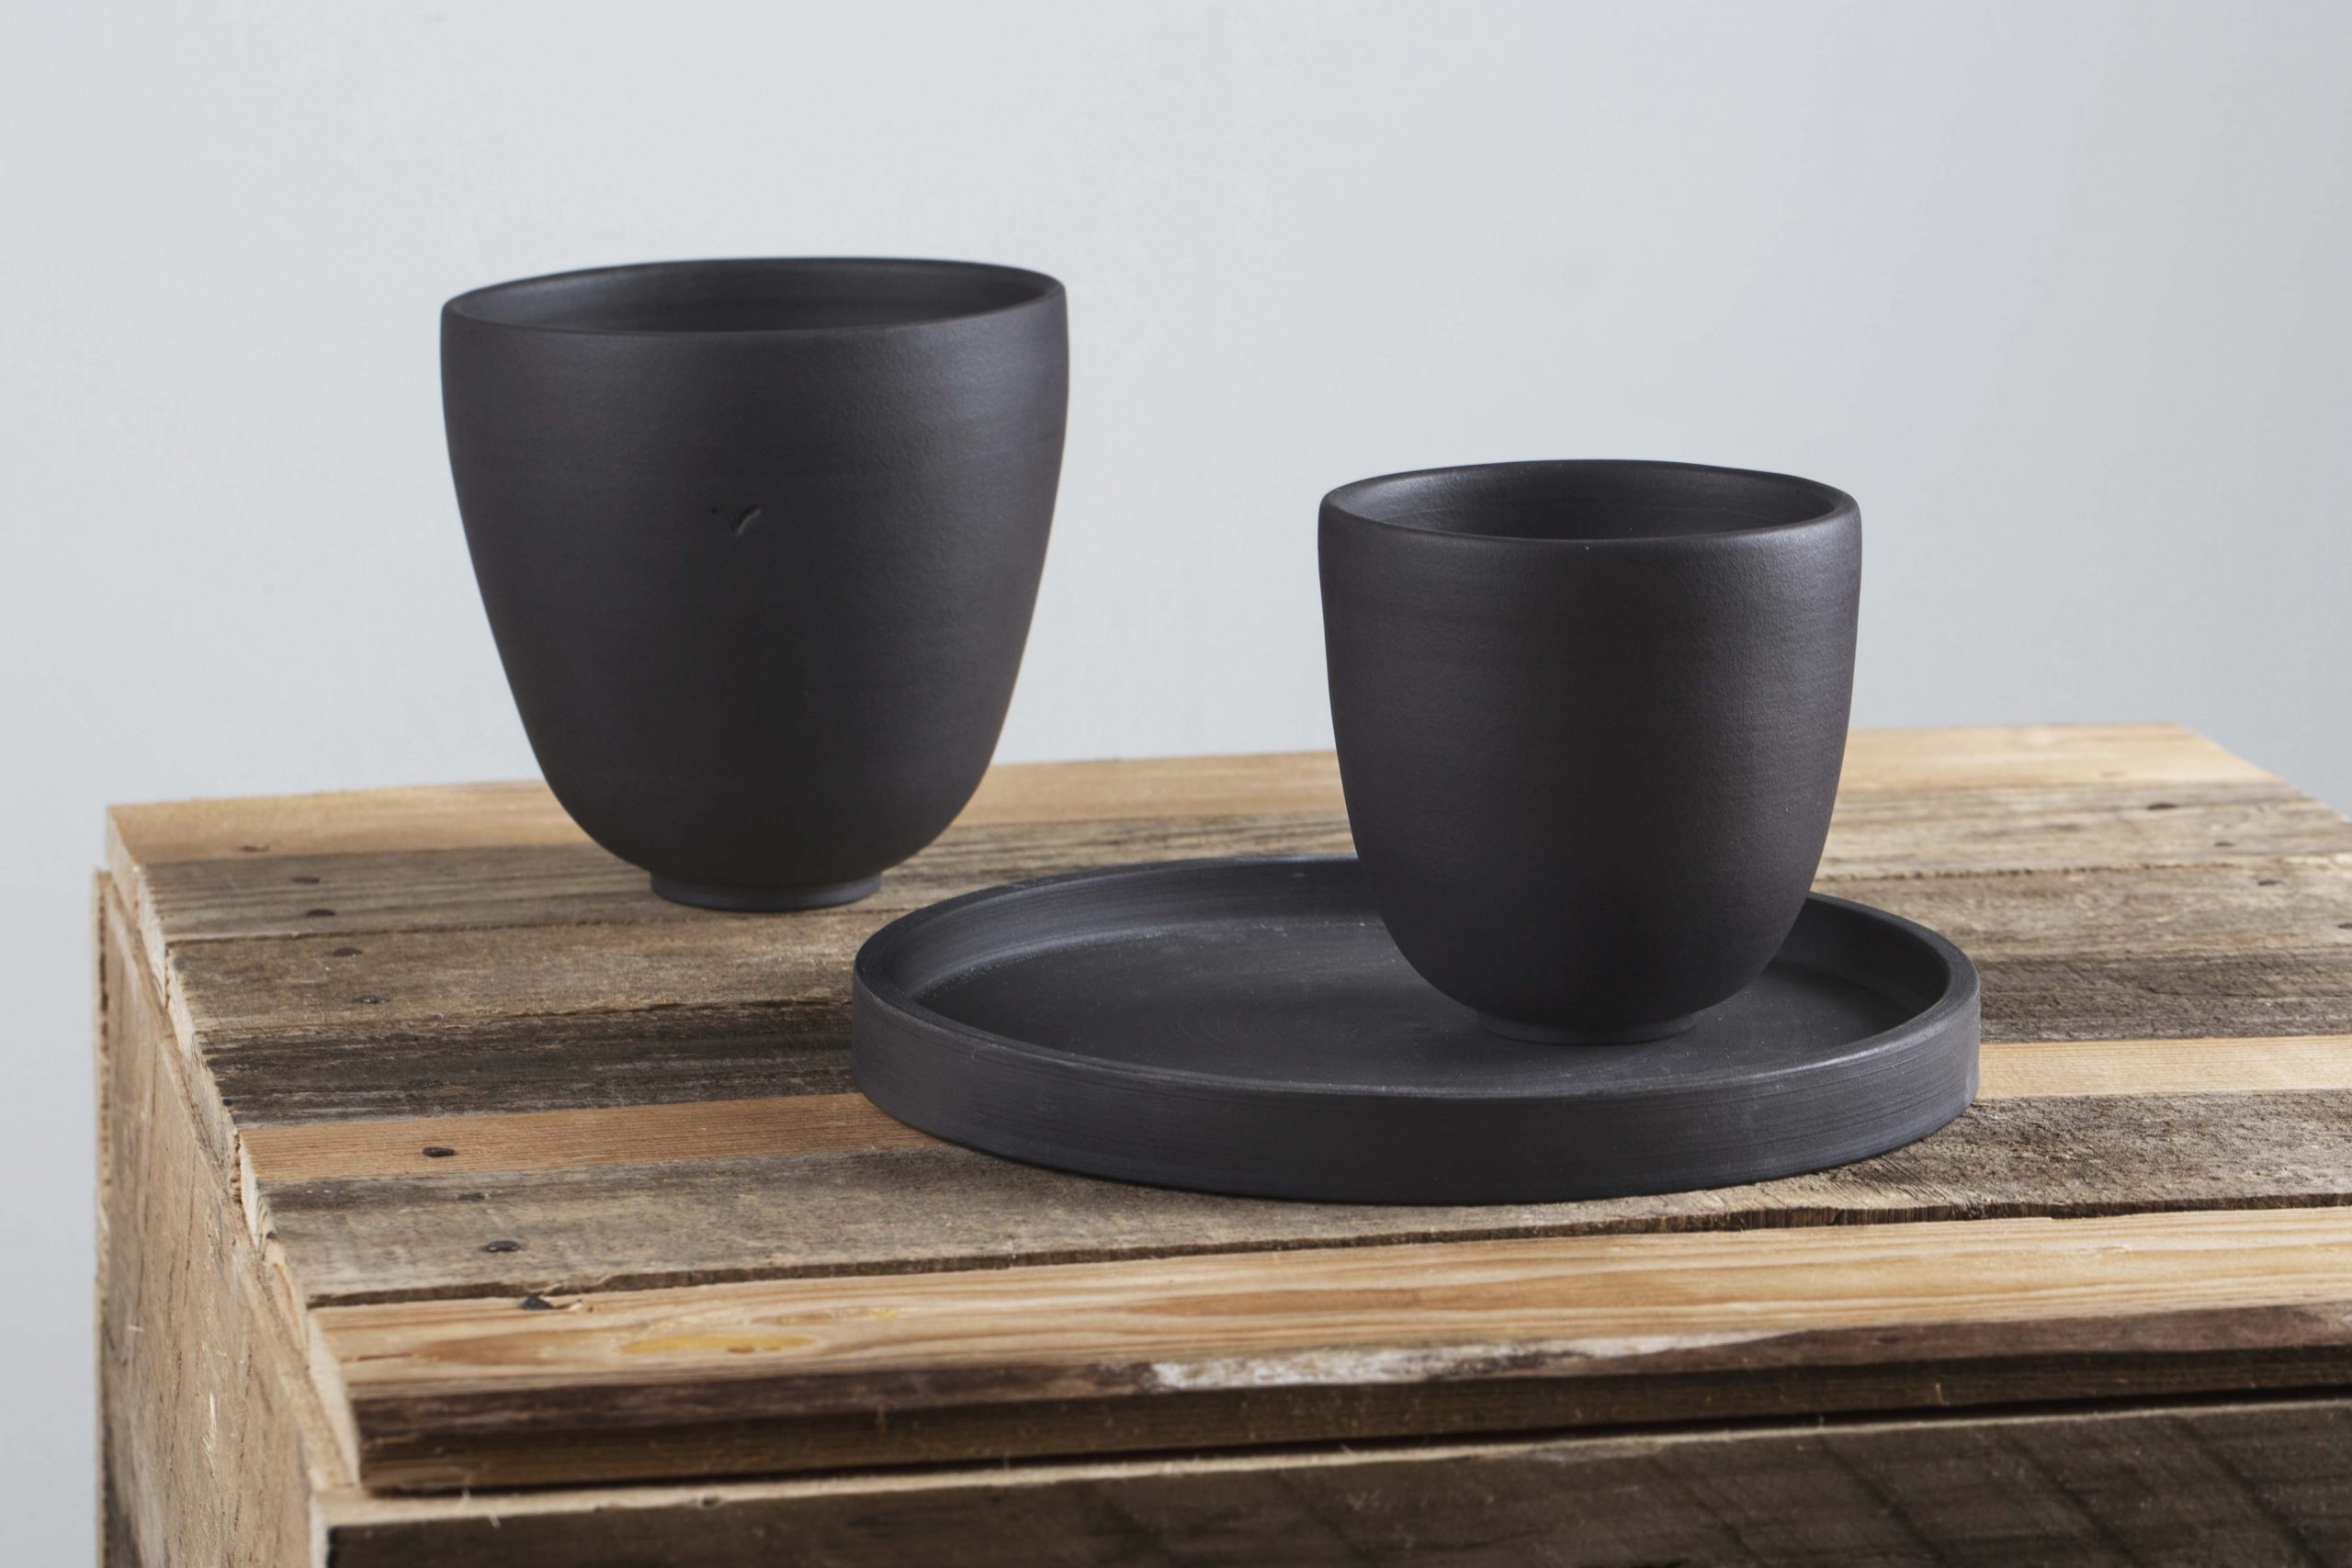 black porcelain table set with plate, bowl and cup - handmade - Federica Ramacciotti